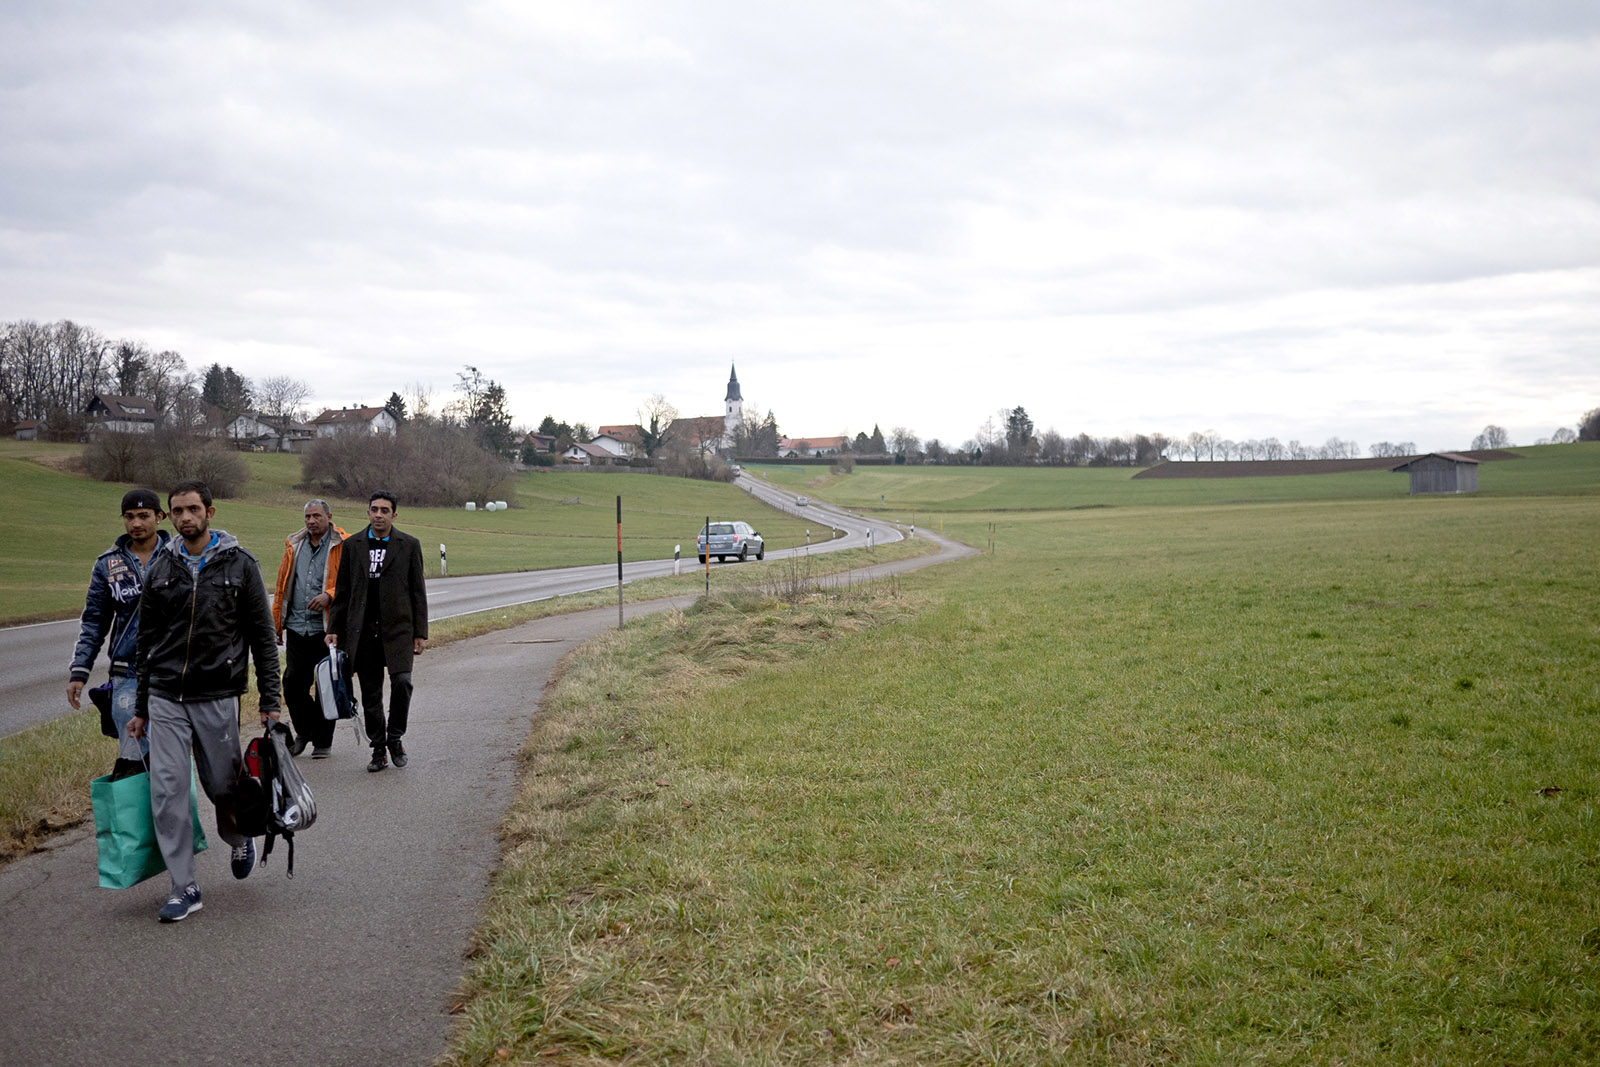 Refugees in Berg am Starnberger See, Germany